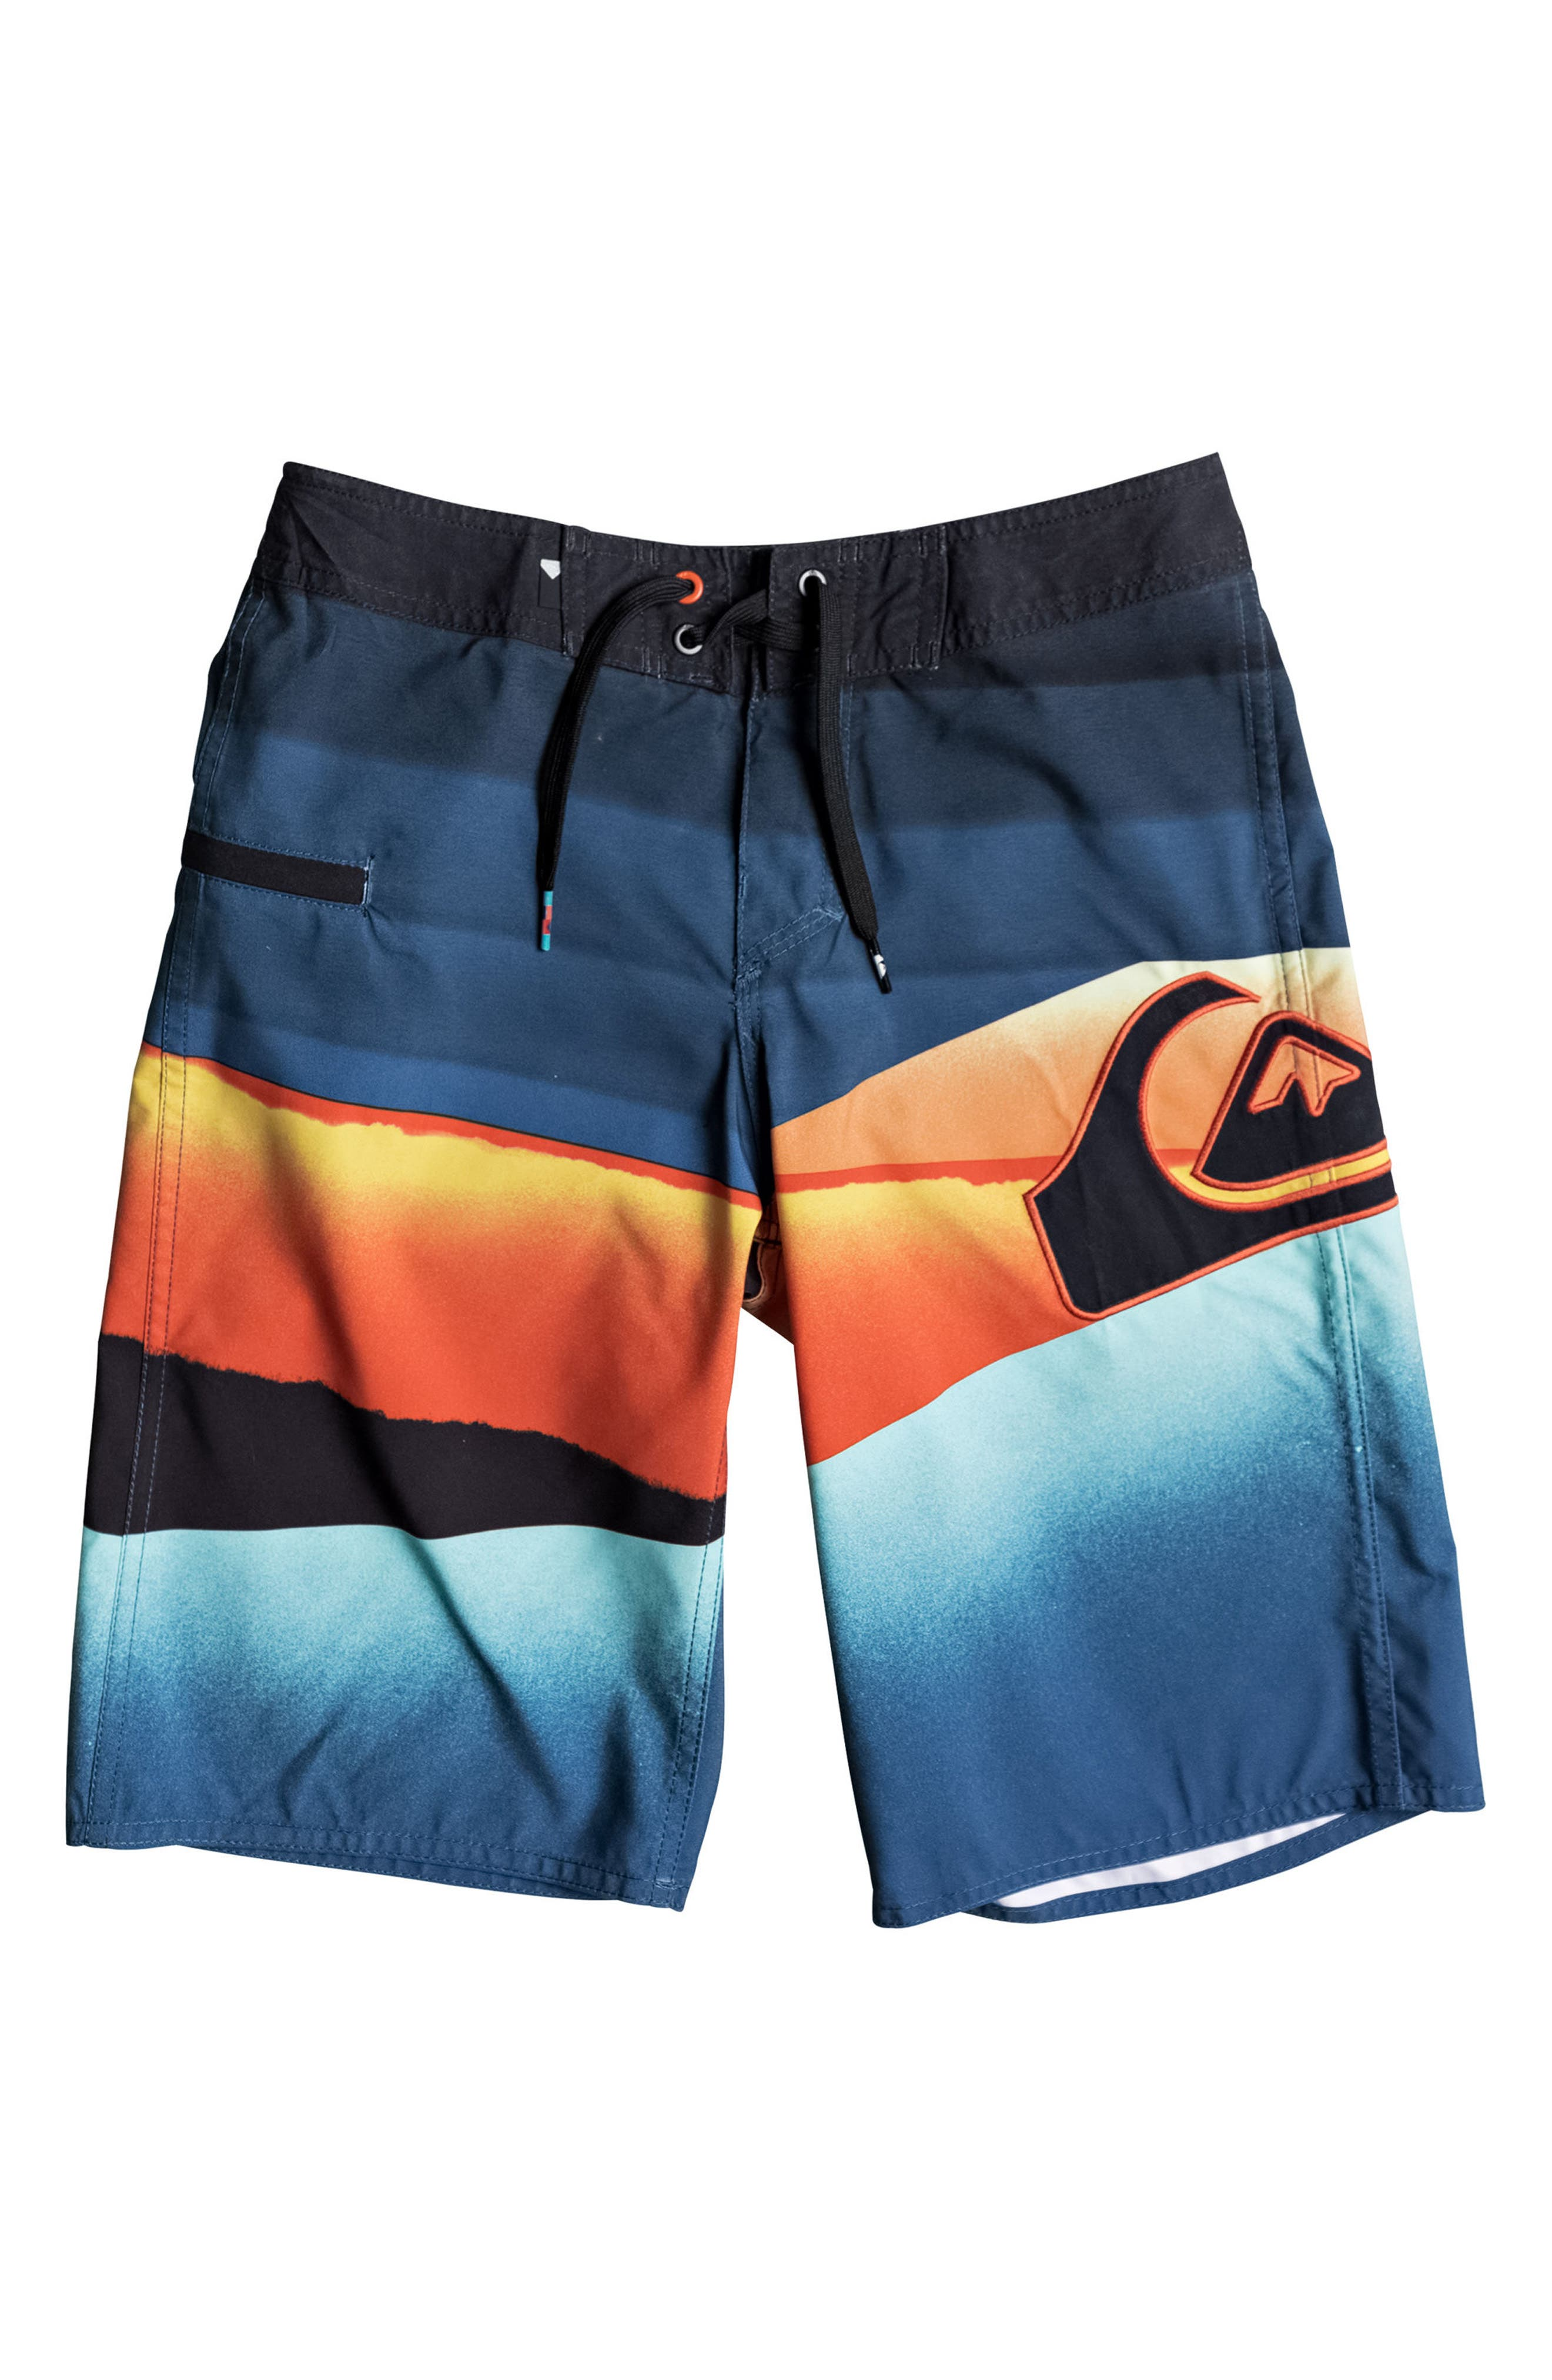 Alternate Image 1 Selected - Quiksilver Slash Logo Board Shorts (Big Boys)